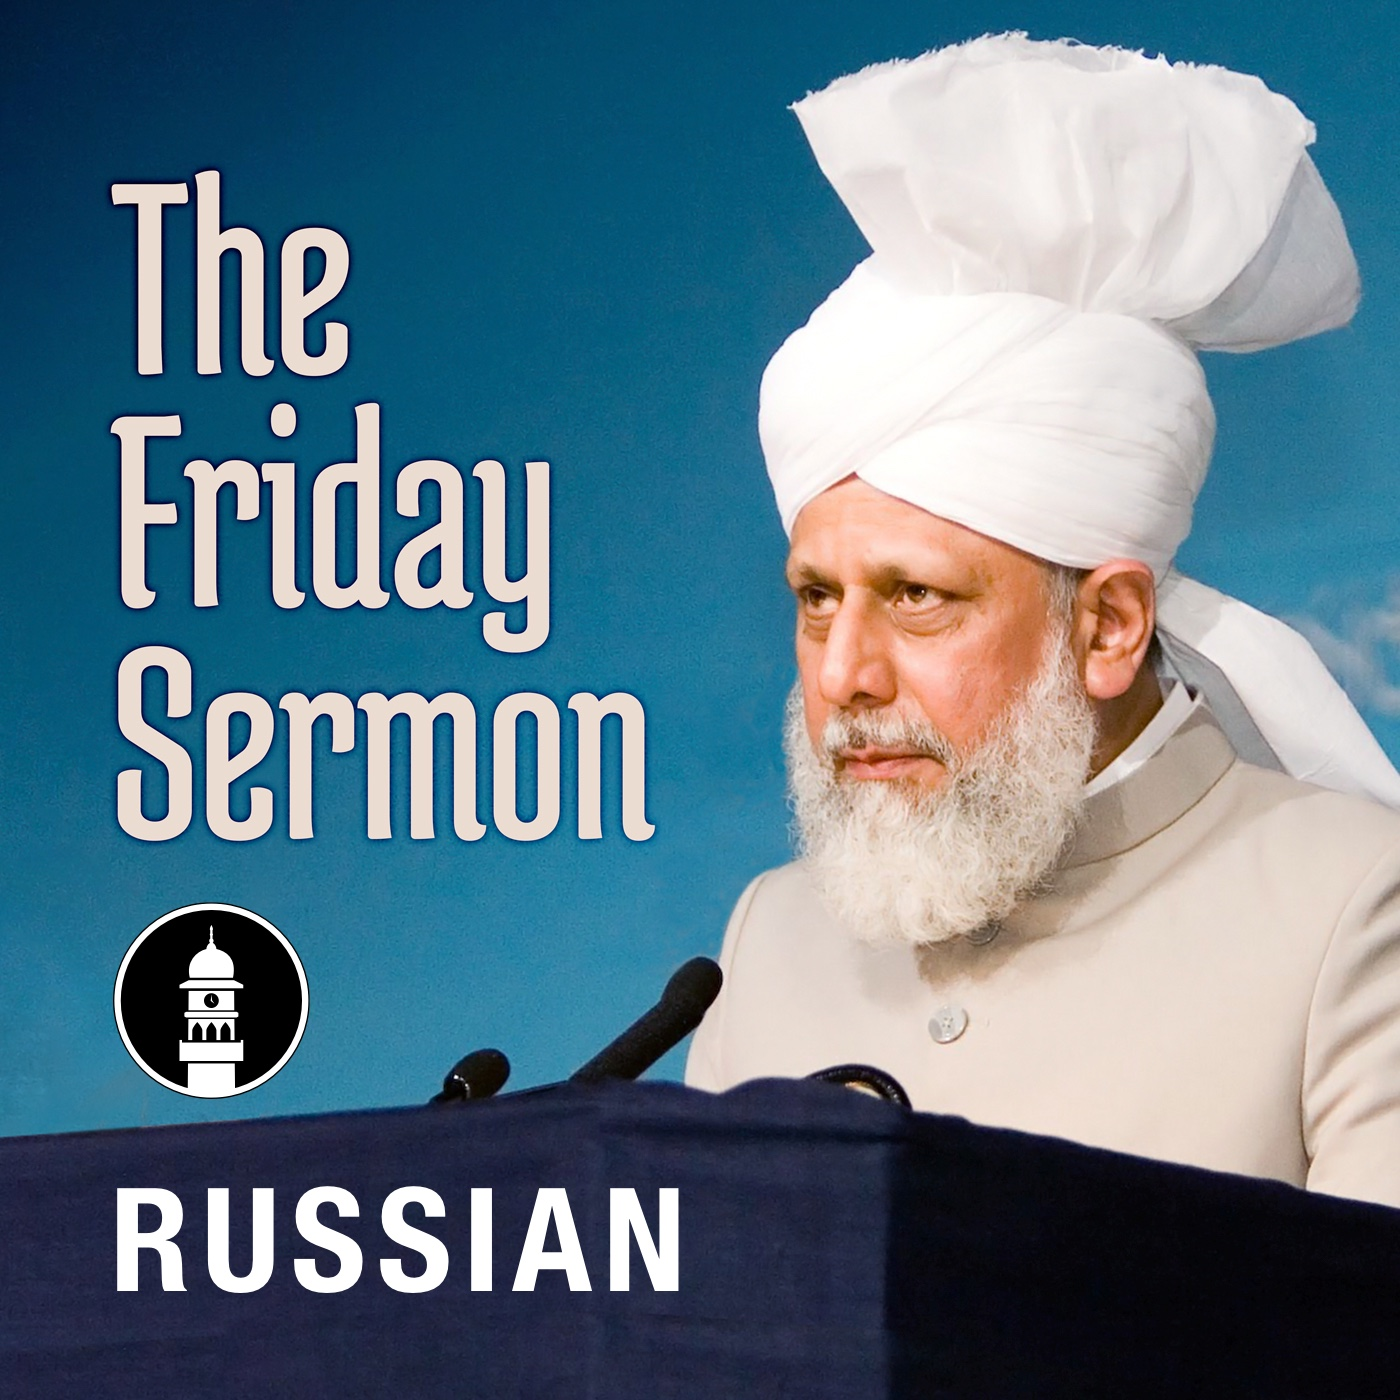 Russian Friday Sermon by Head of Ahmadiyya Muslim Community